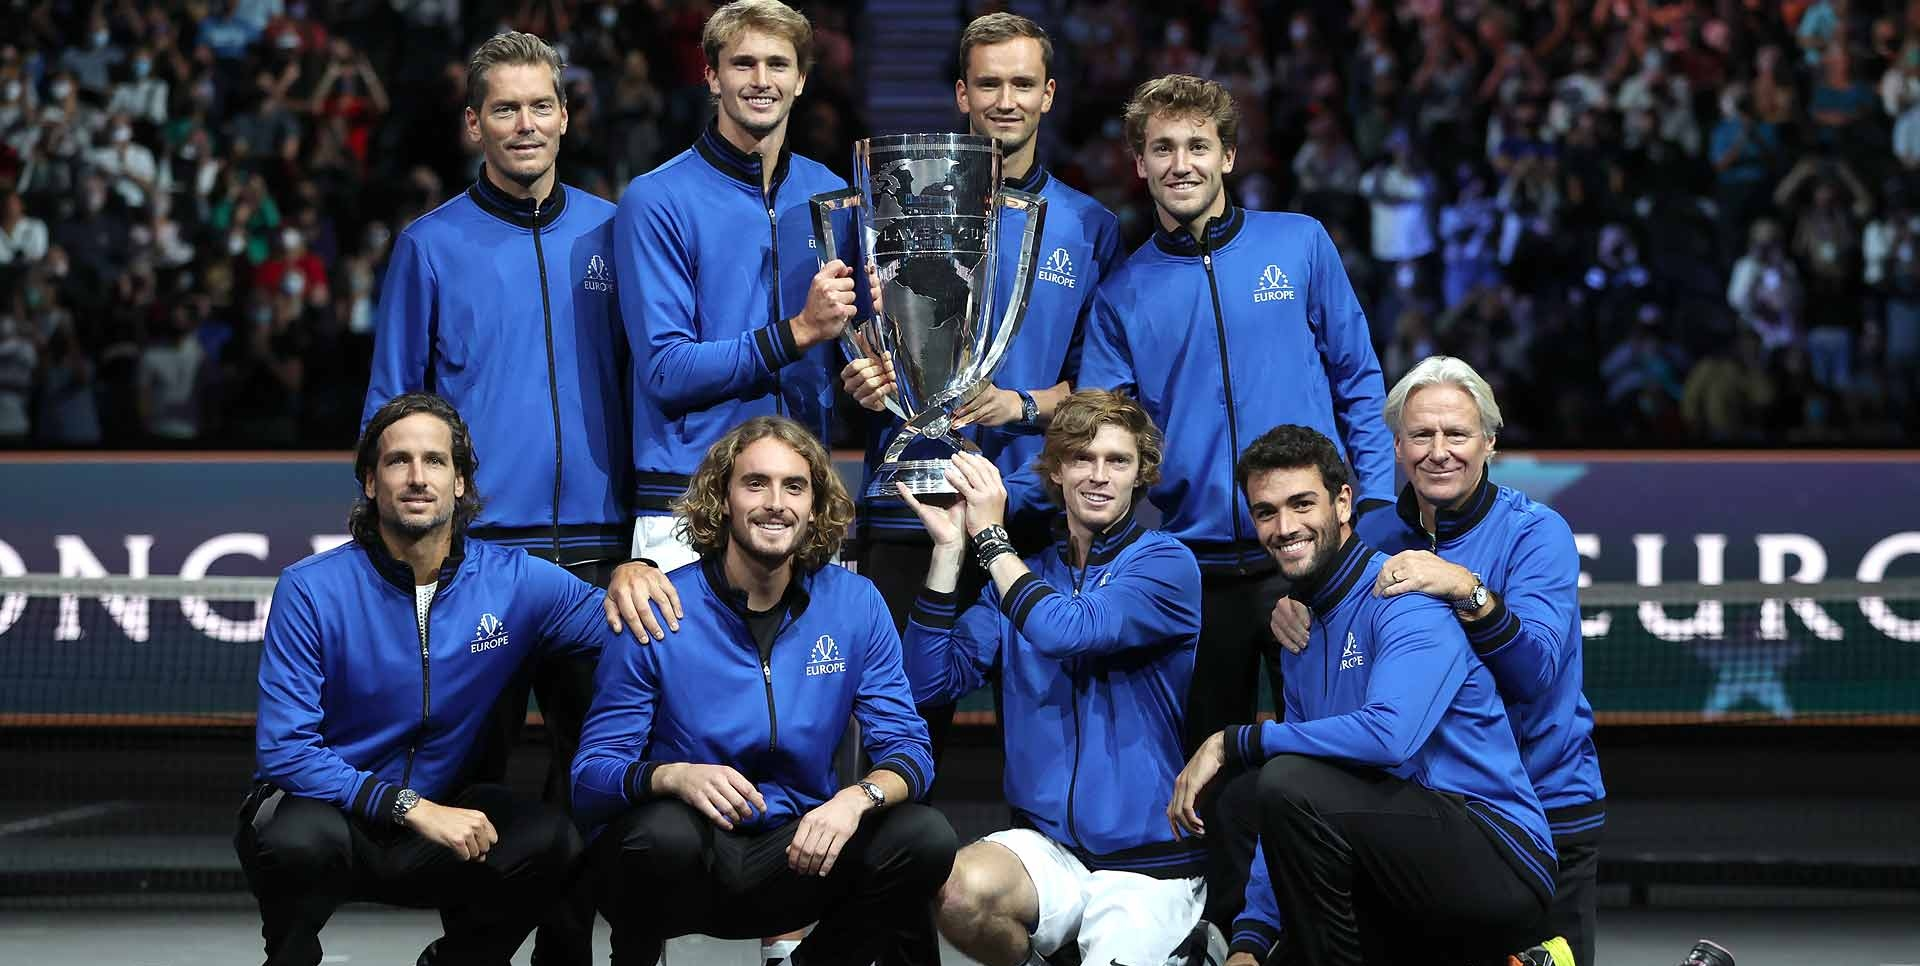 THE LAVER CUP IS HEADING TO BEAUTIFUL GENEVA Team Europe will look to defend its title. Tickets in hand!